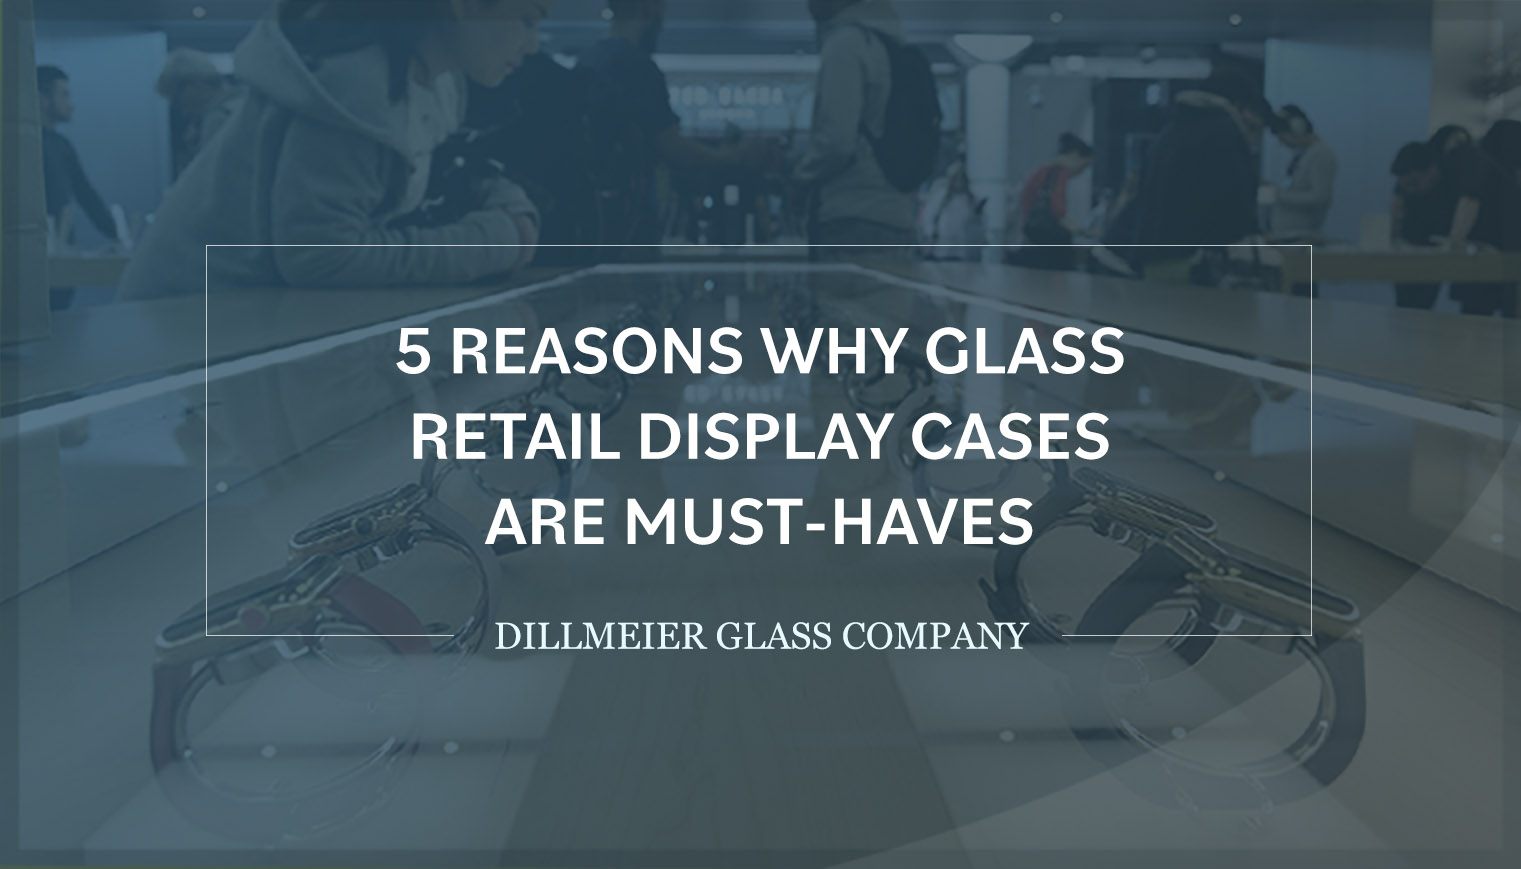 5 Reasons Why Glass Retail Display Cases Are Must-Haves